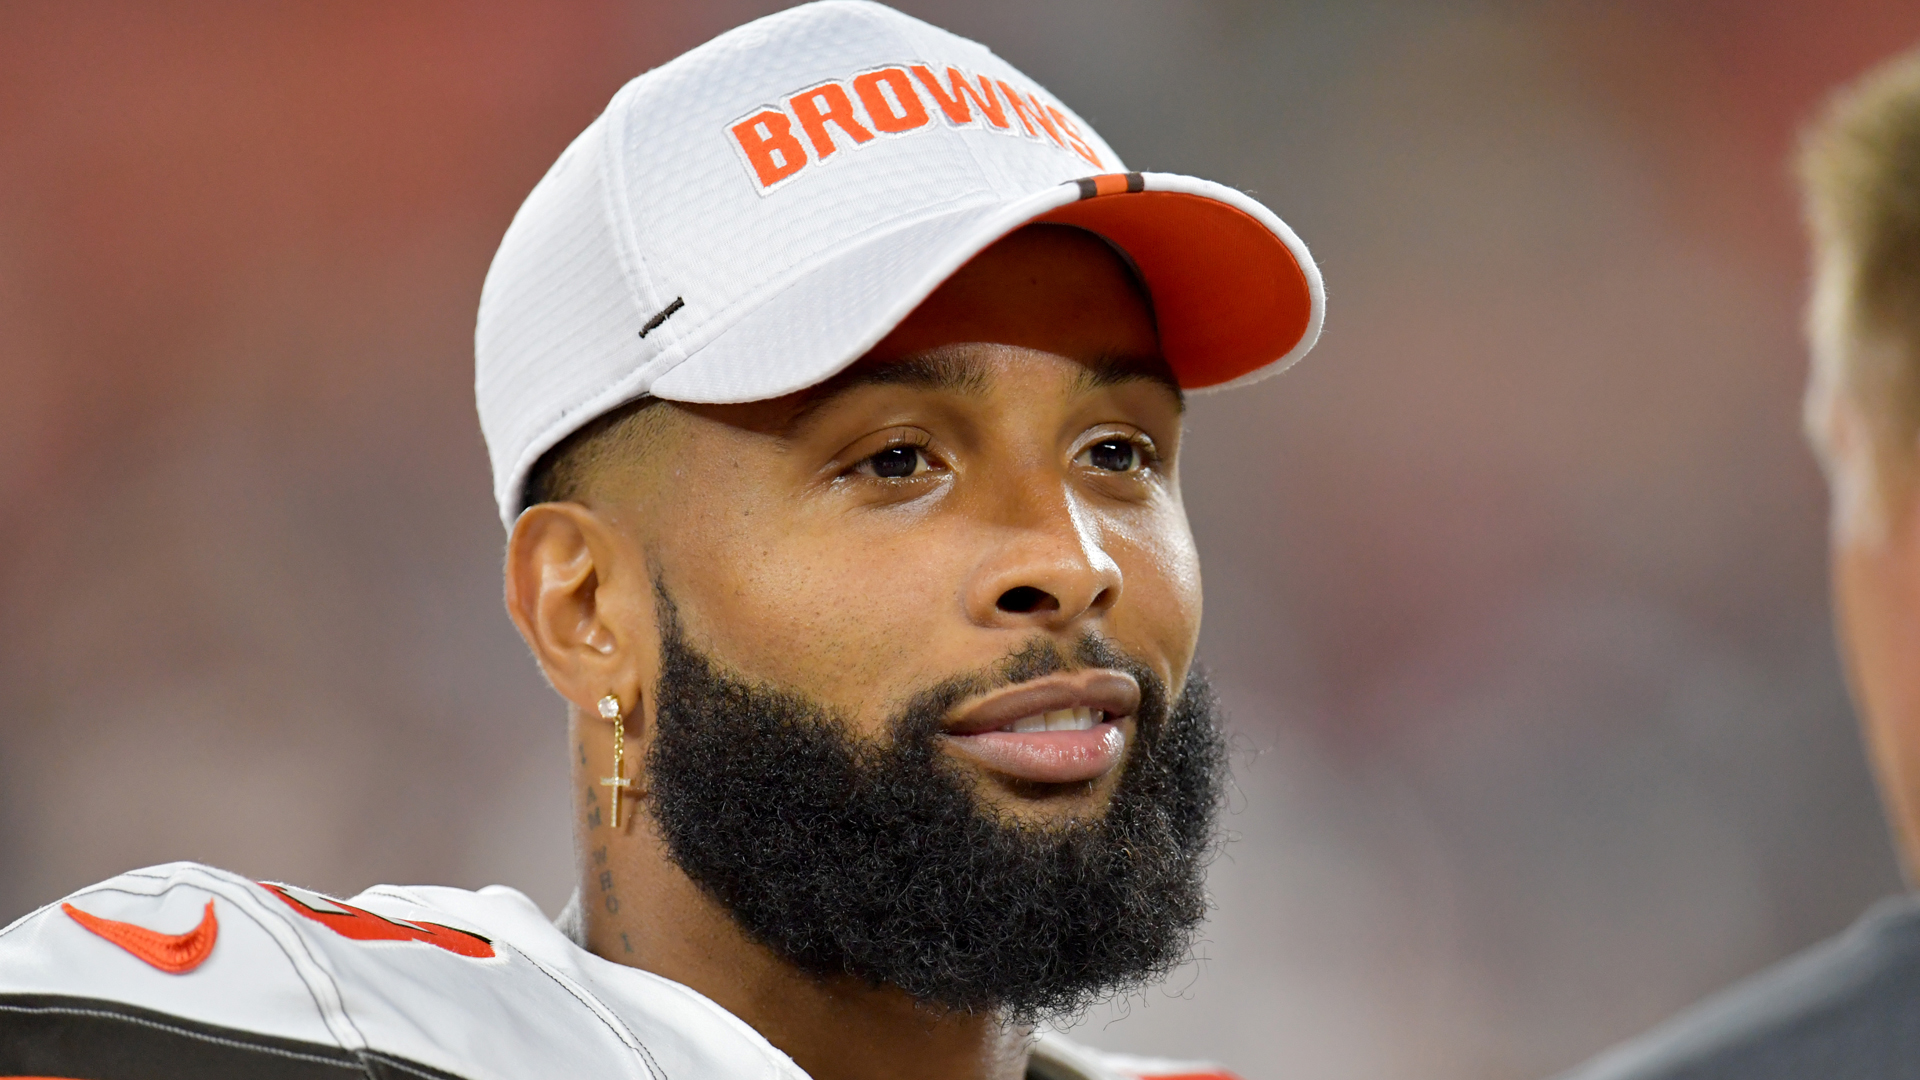 Odell Beckham Jr. is not 100 per cent, according to Cleveland Browns head coach Freddie Kitchens.